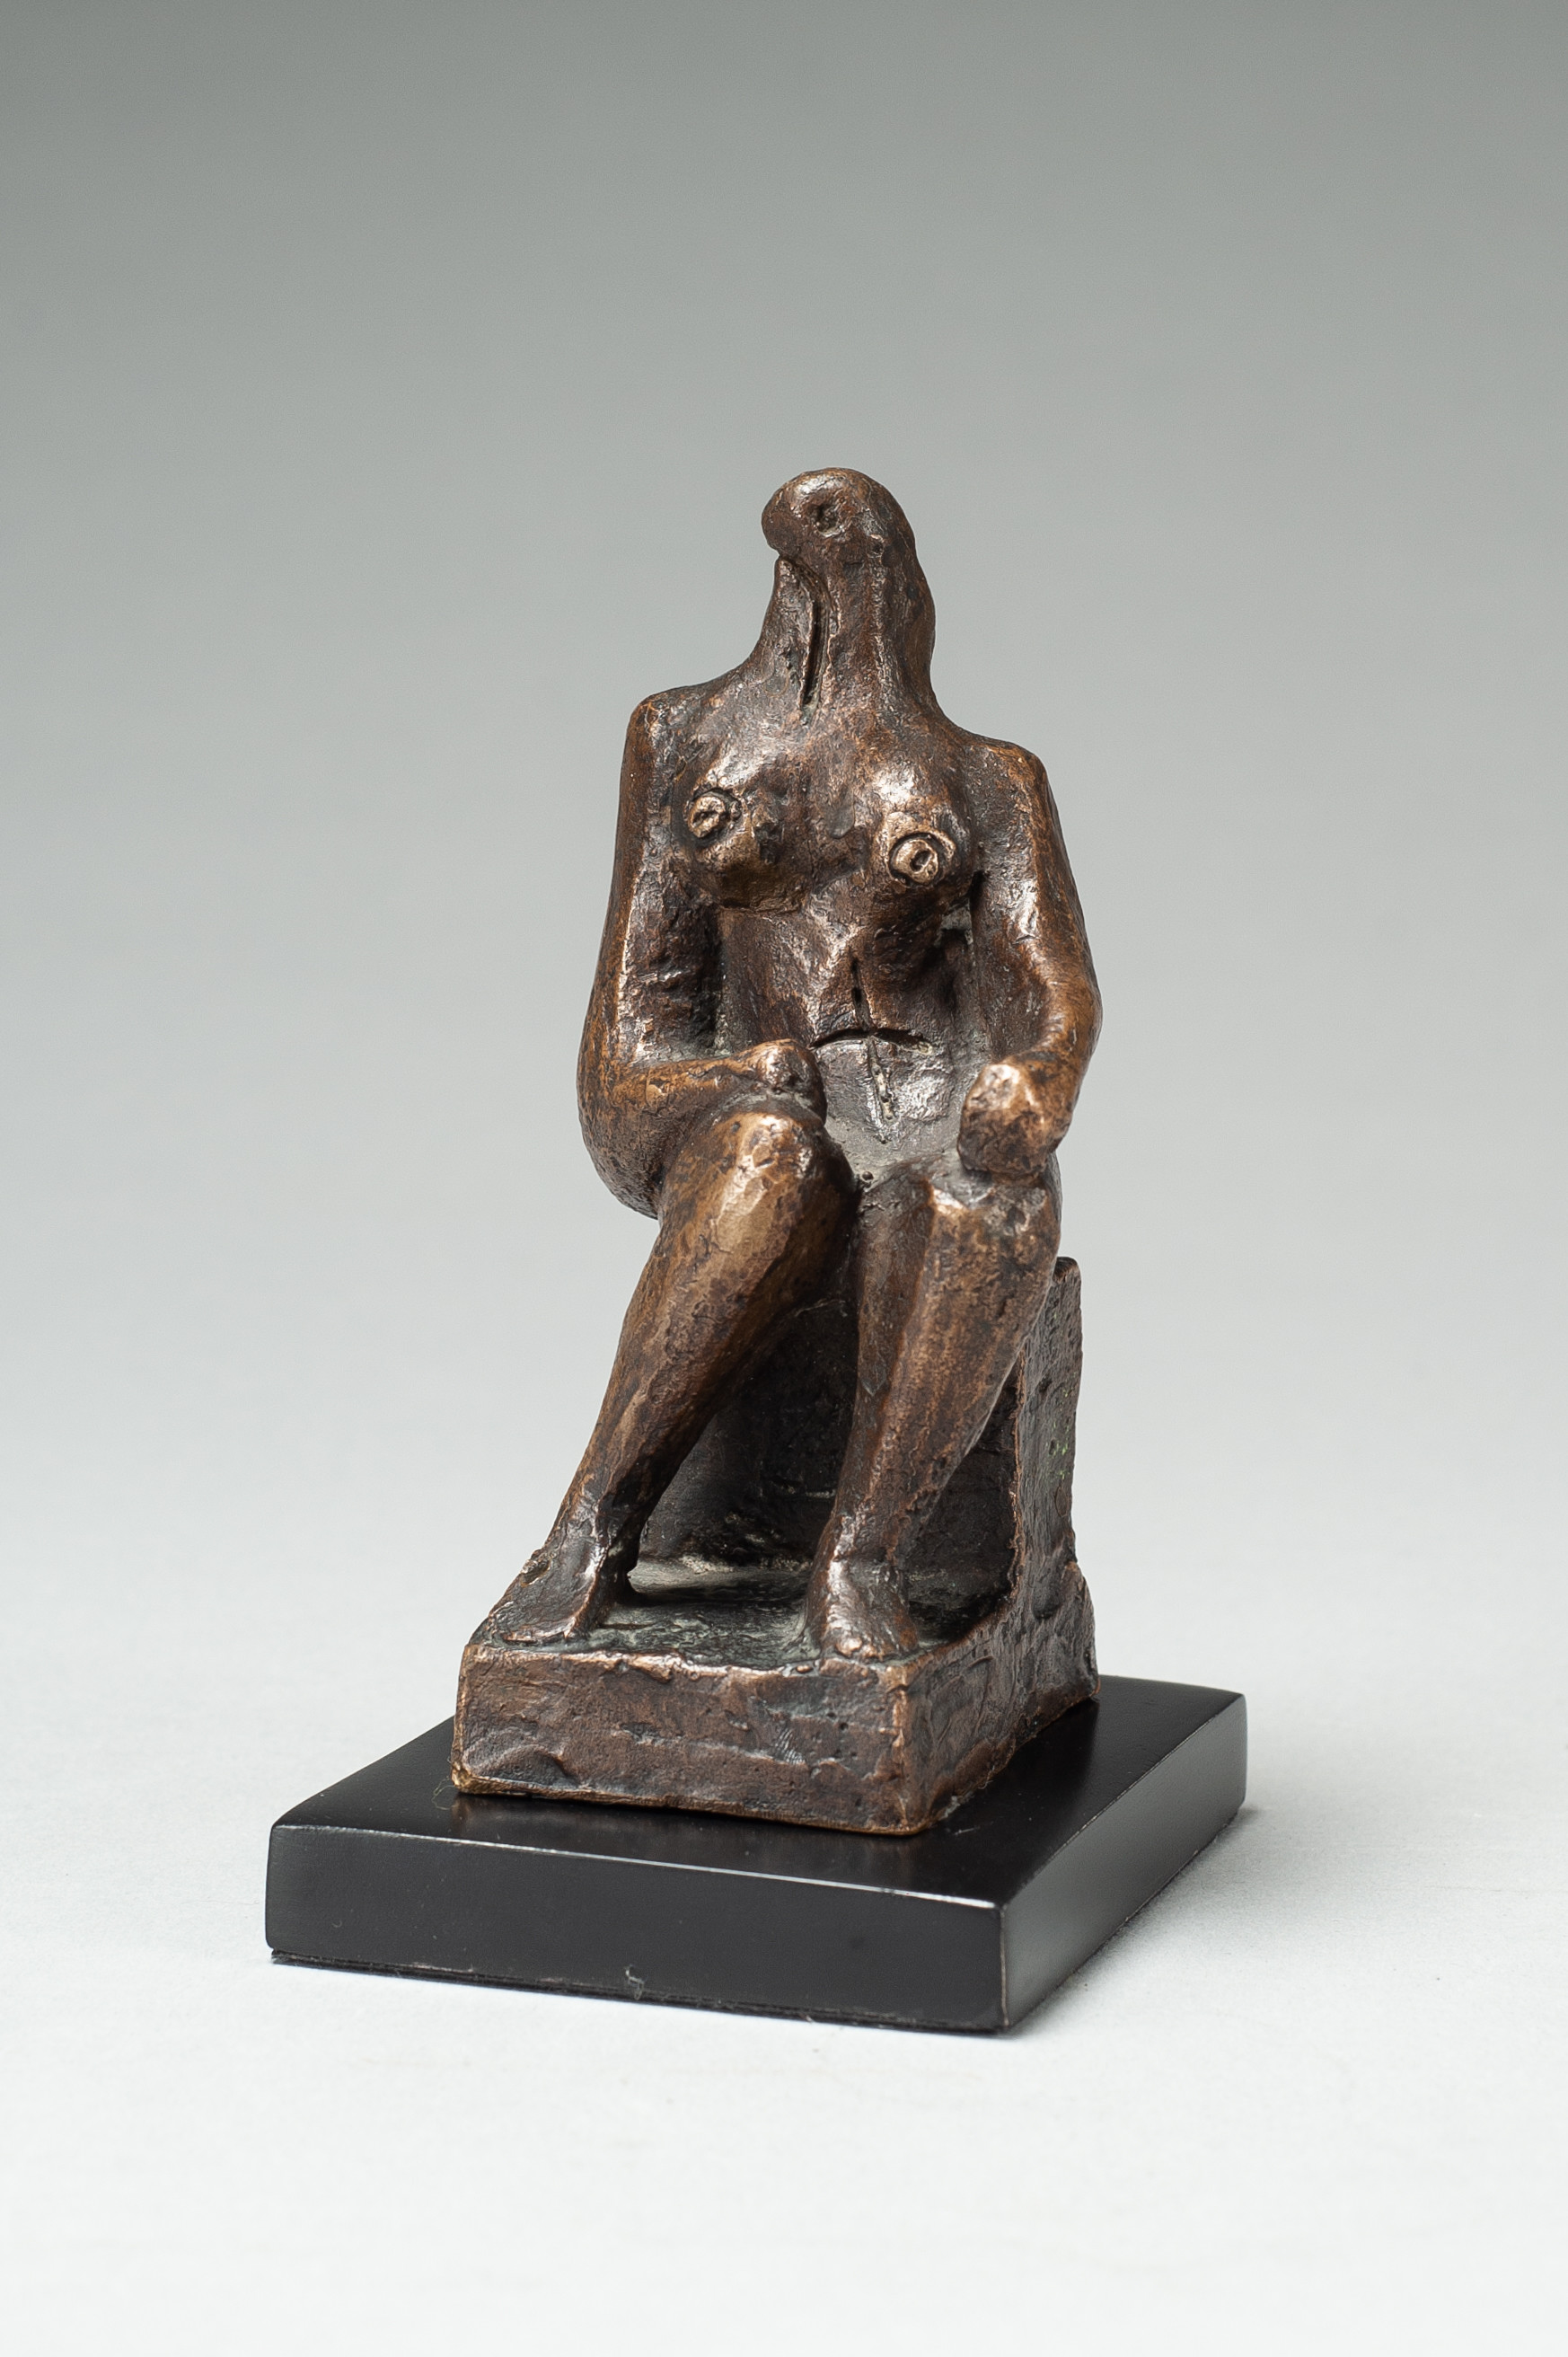 Henry Moore (1898-1986)   Small Seated Figure,  Bronze with brown patina, 13.3 cm, Edition of 7 plus 1 artist's proof